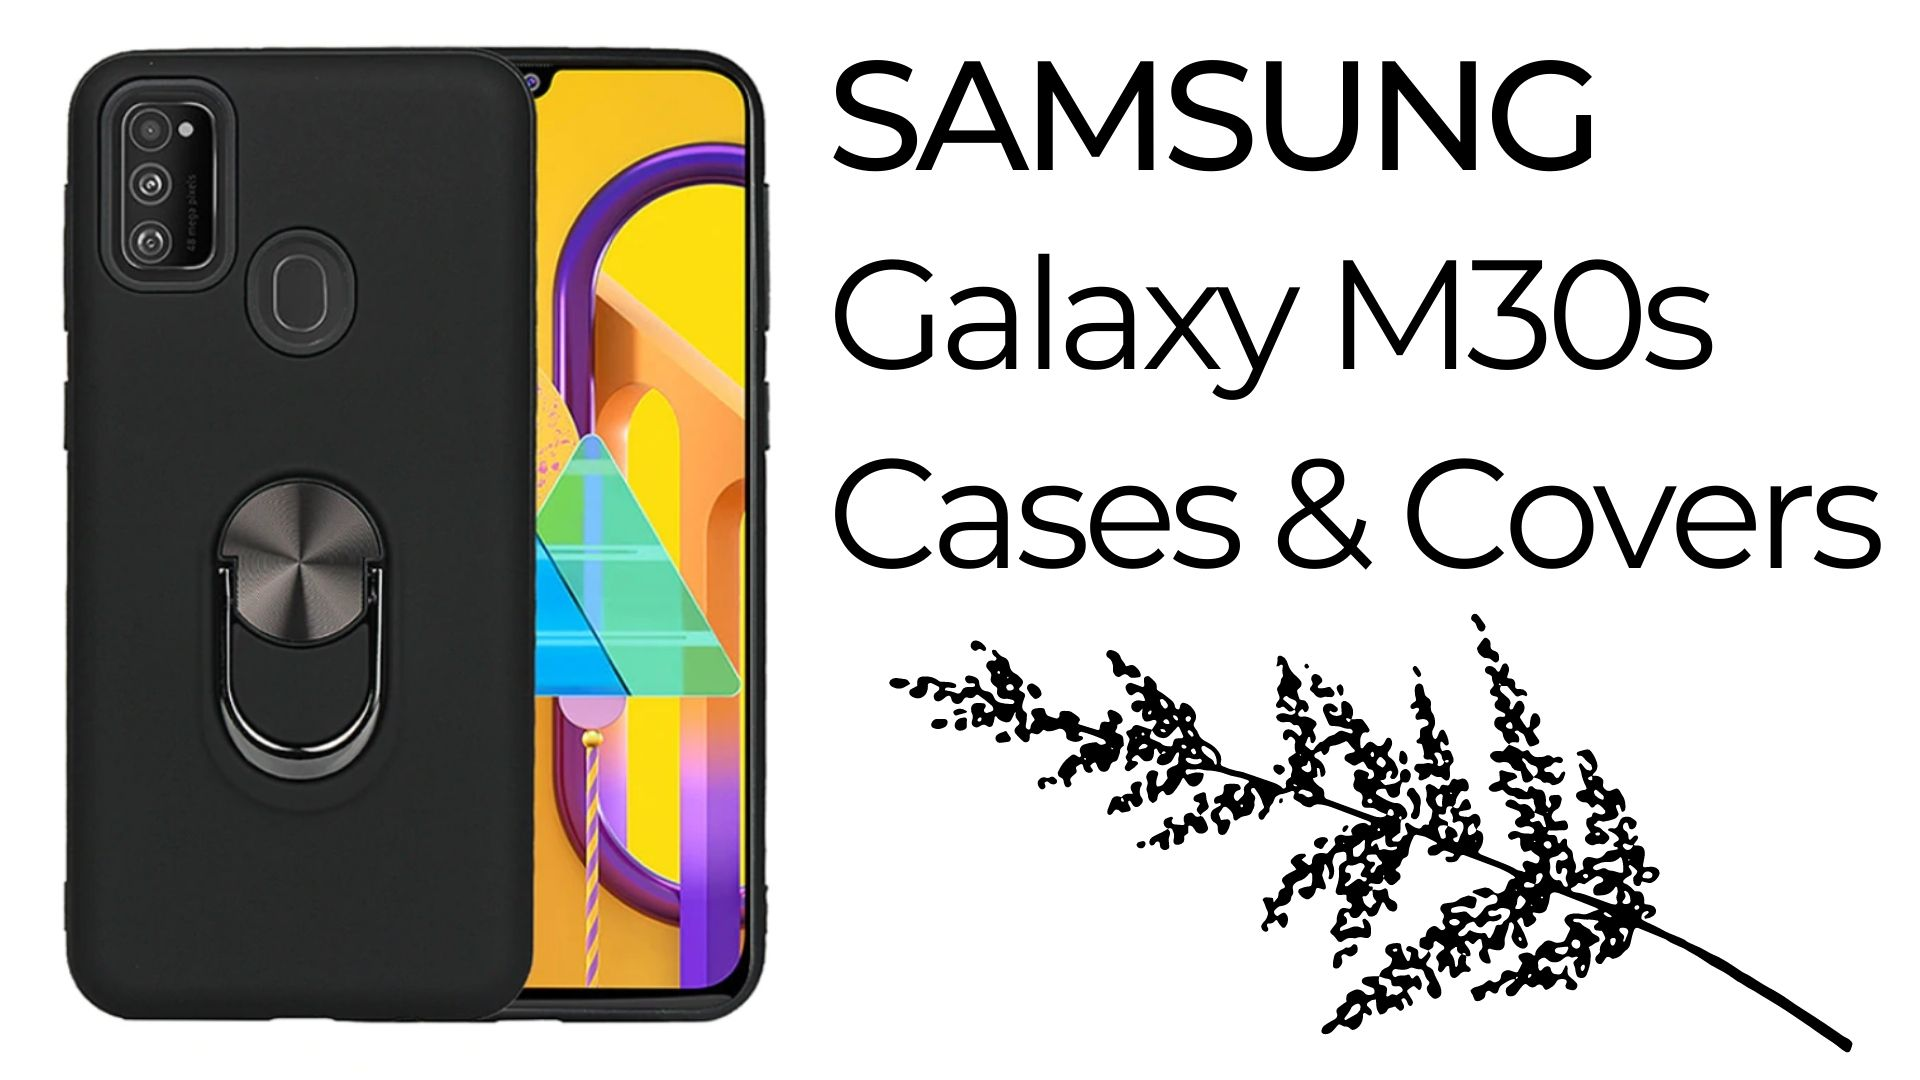 Samsung galaxy m30s cases